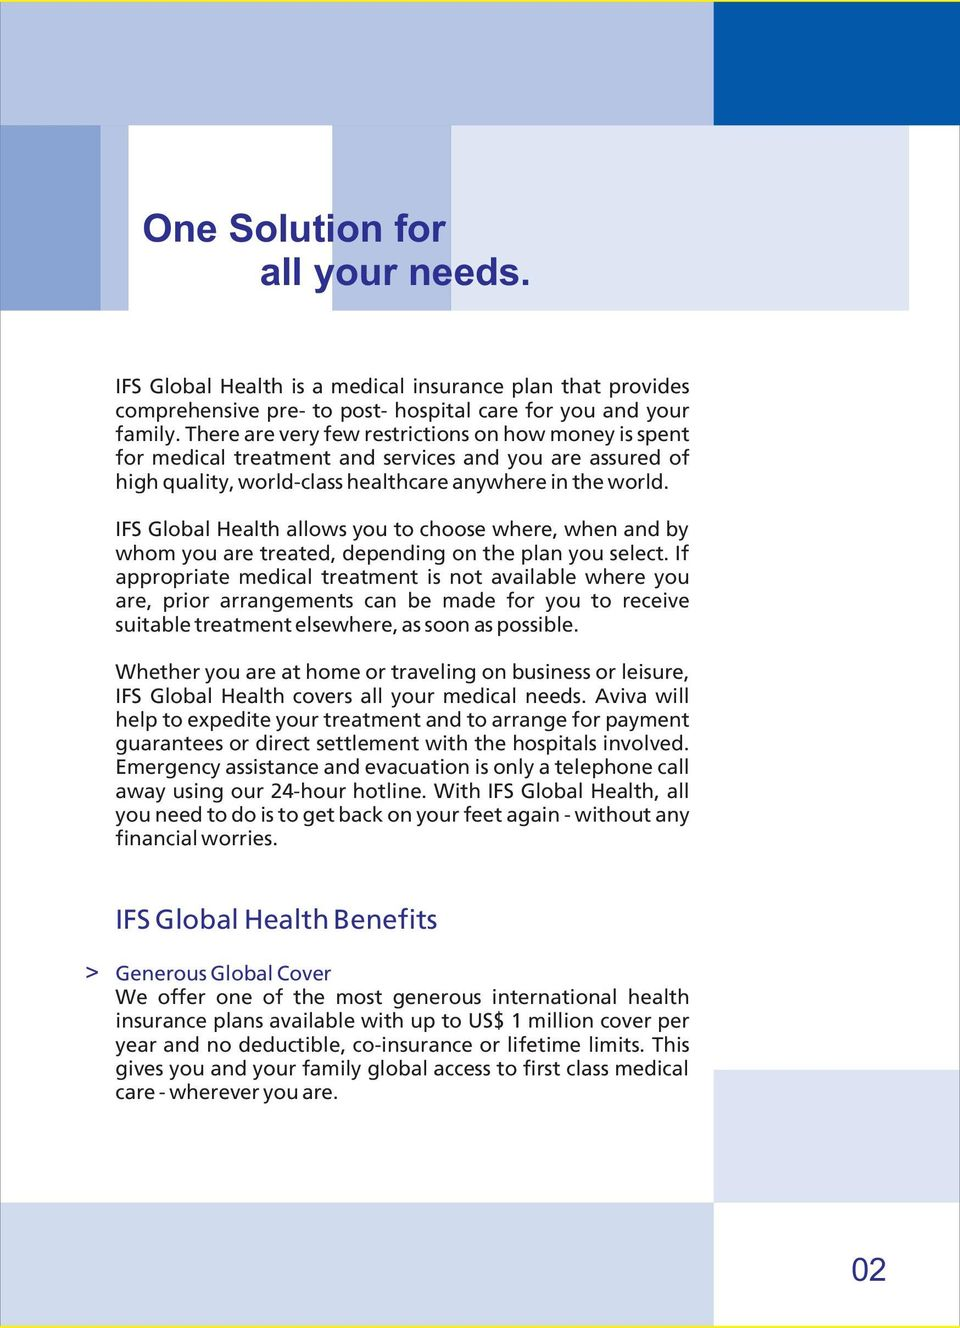 IFS Global Health allows you to choose where, when and by whom you are treated, depending on the plan you select.